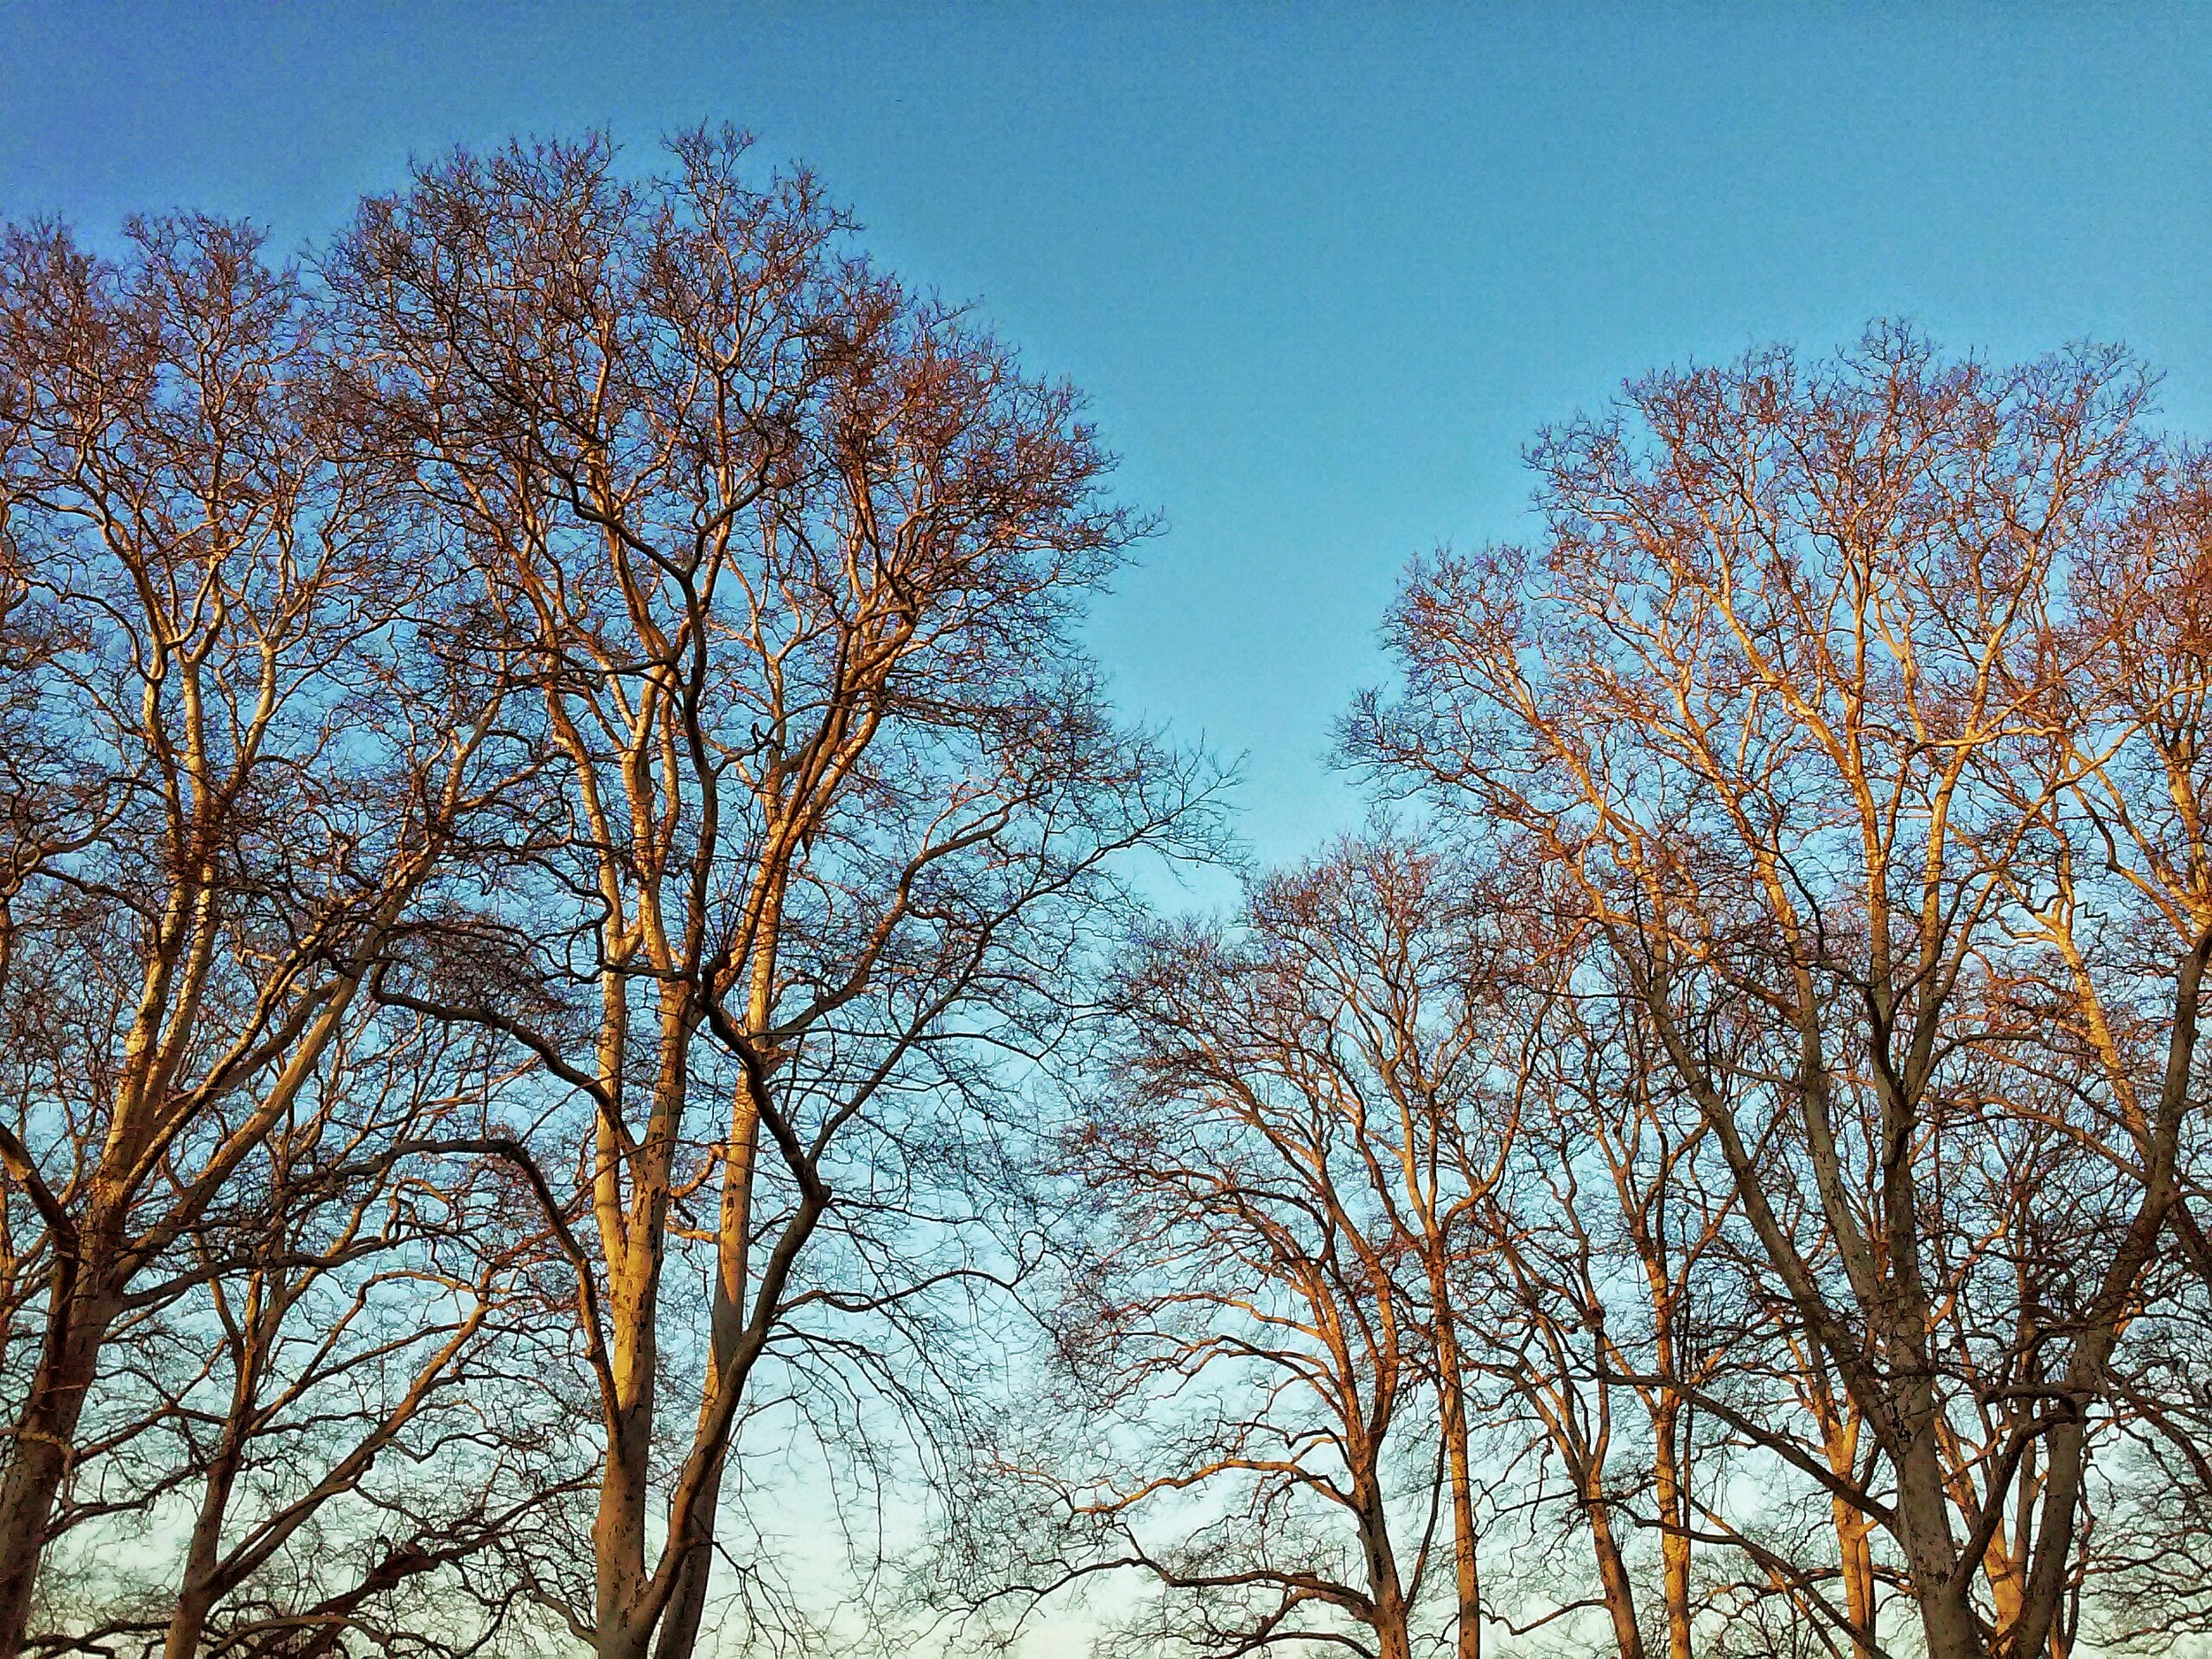 early-morning-london-plane-trees-wbc.jpg